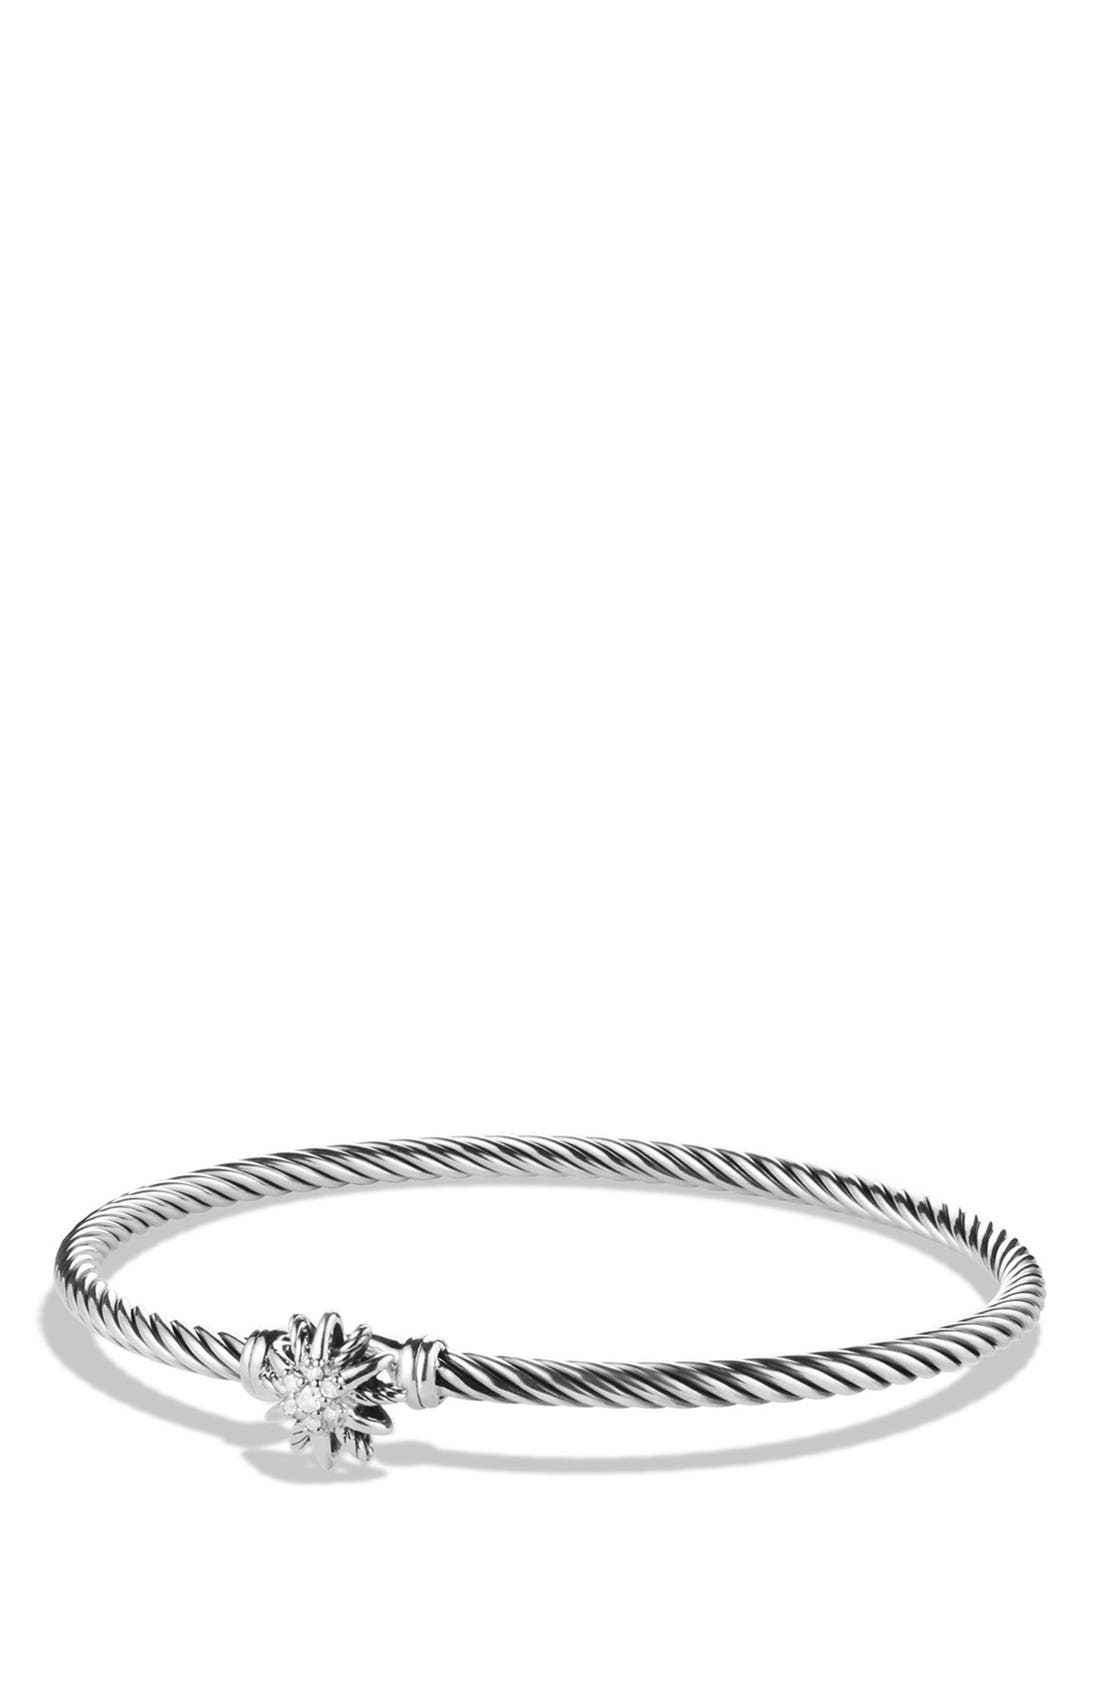 David Yurman 'Starburst' Single-Station Bracelet with Diamonds